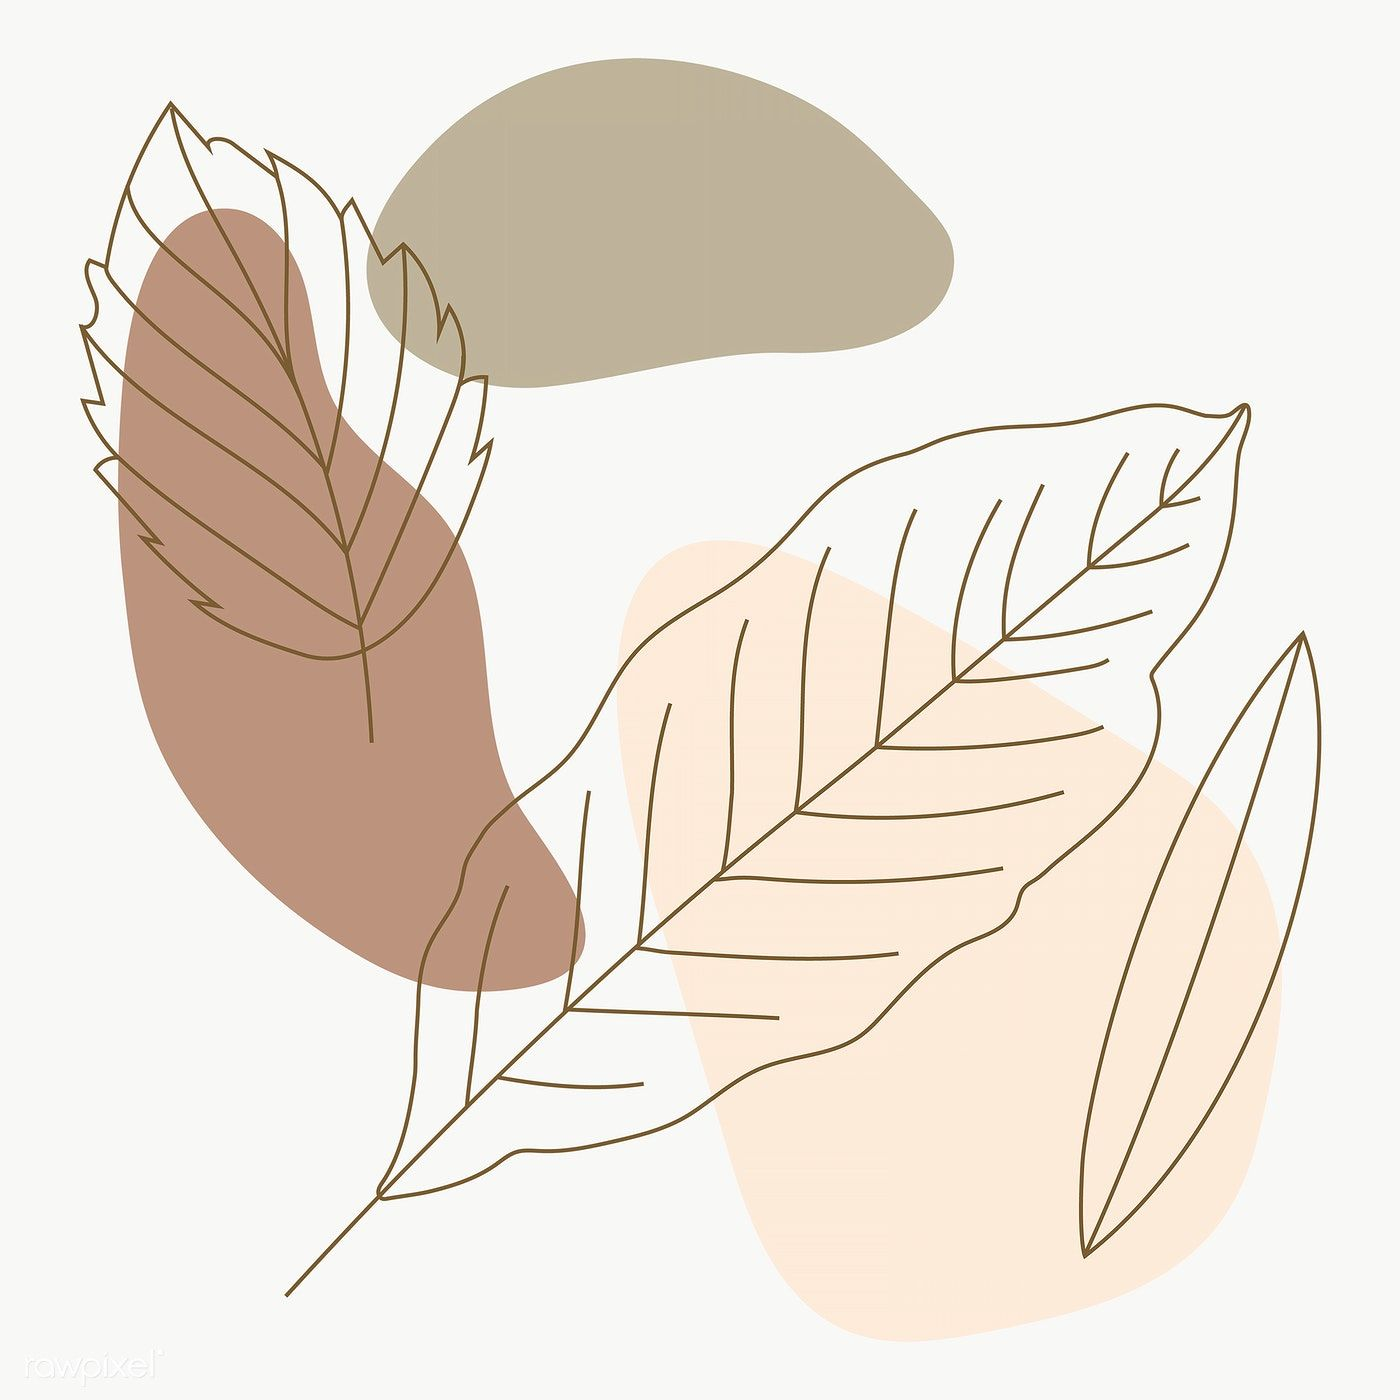 Leaf Line Art Pattern Background Transparent Png Premium Image By Rawpixel Com Katie Line Art Drawings Abstract Line Art Pattern Art